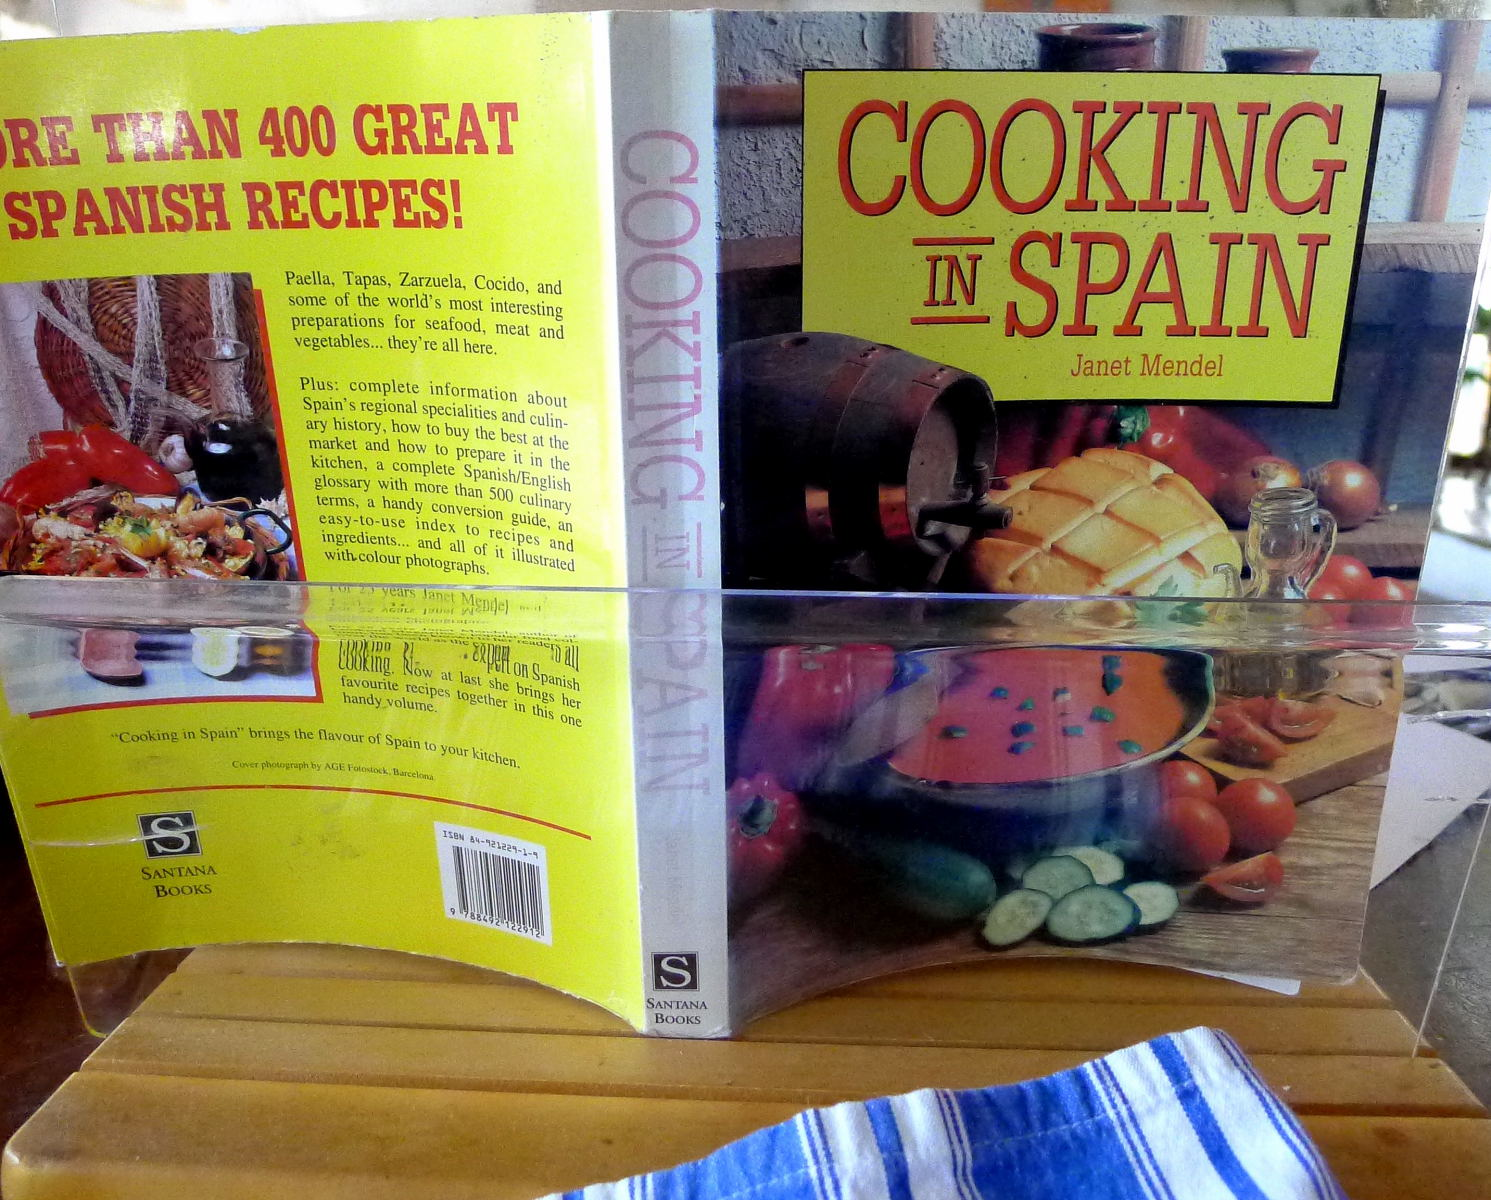 My kitchen in spain bring back an old favorite when i prepared a new edition of my first ever cookbook cooking in spain 1987 2006 i edited it down from more than 400 recipes to fewer than 300 forumfinder Choice Image